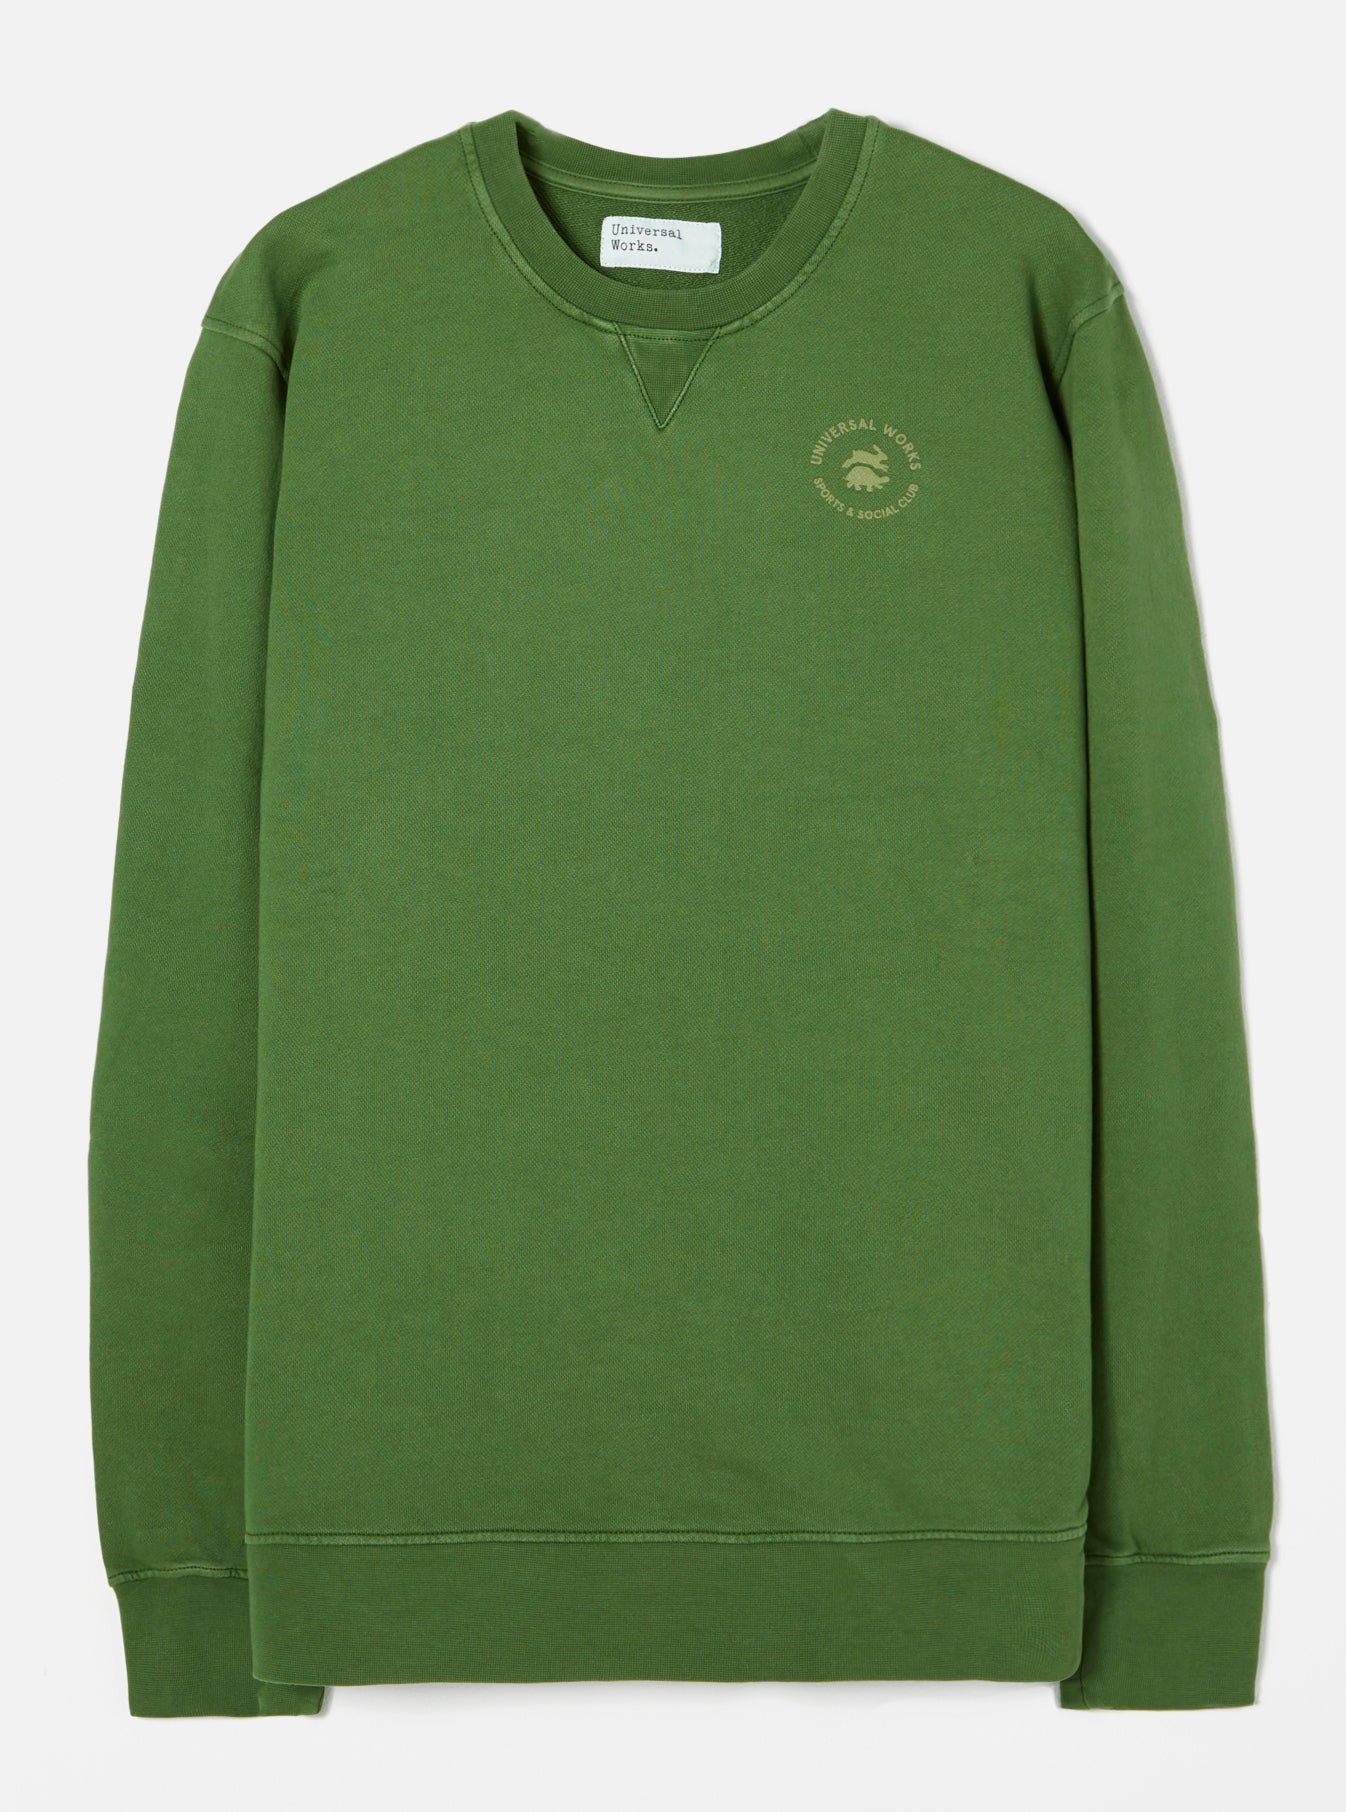 Universal Works S&SC Print Crew in Green Dry Handle Loopback